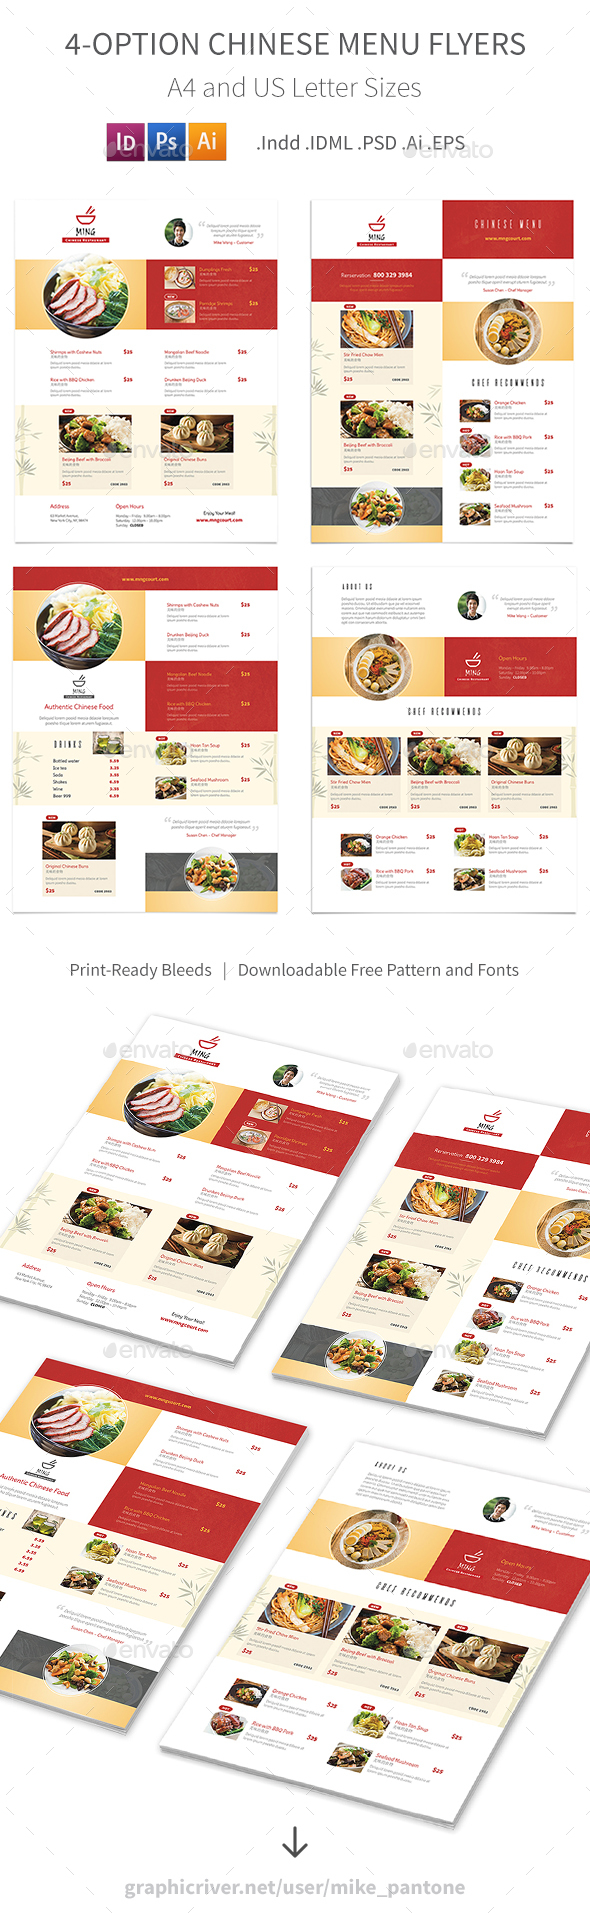 Chinese Restaurant Menu Flyers 2 – 4 Options